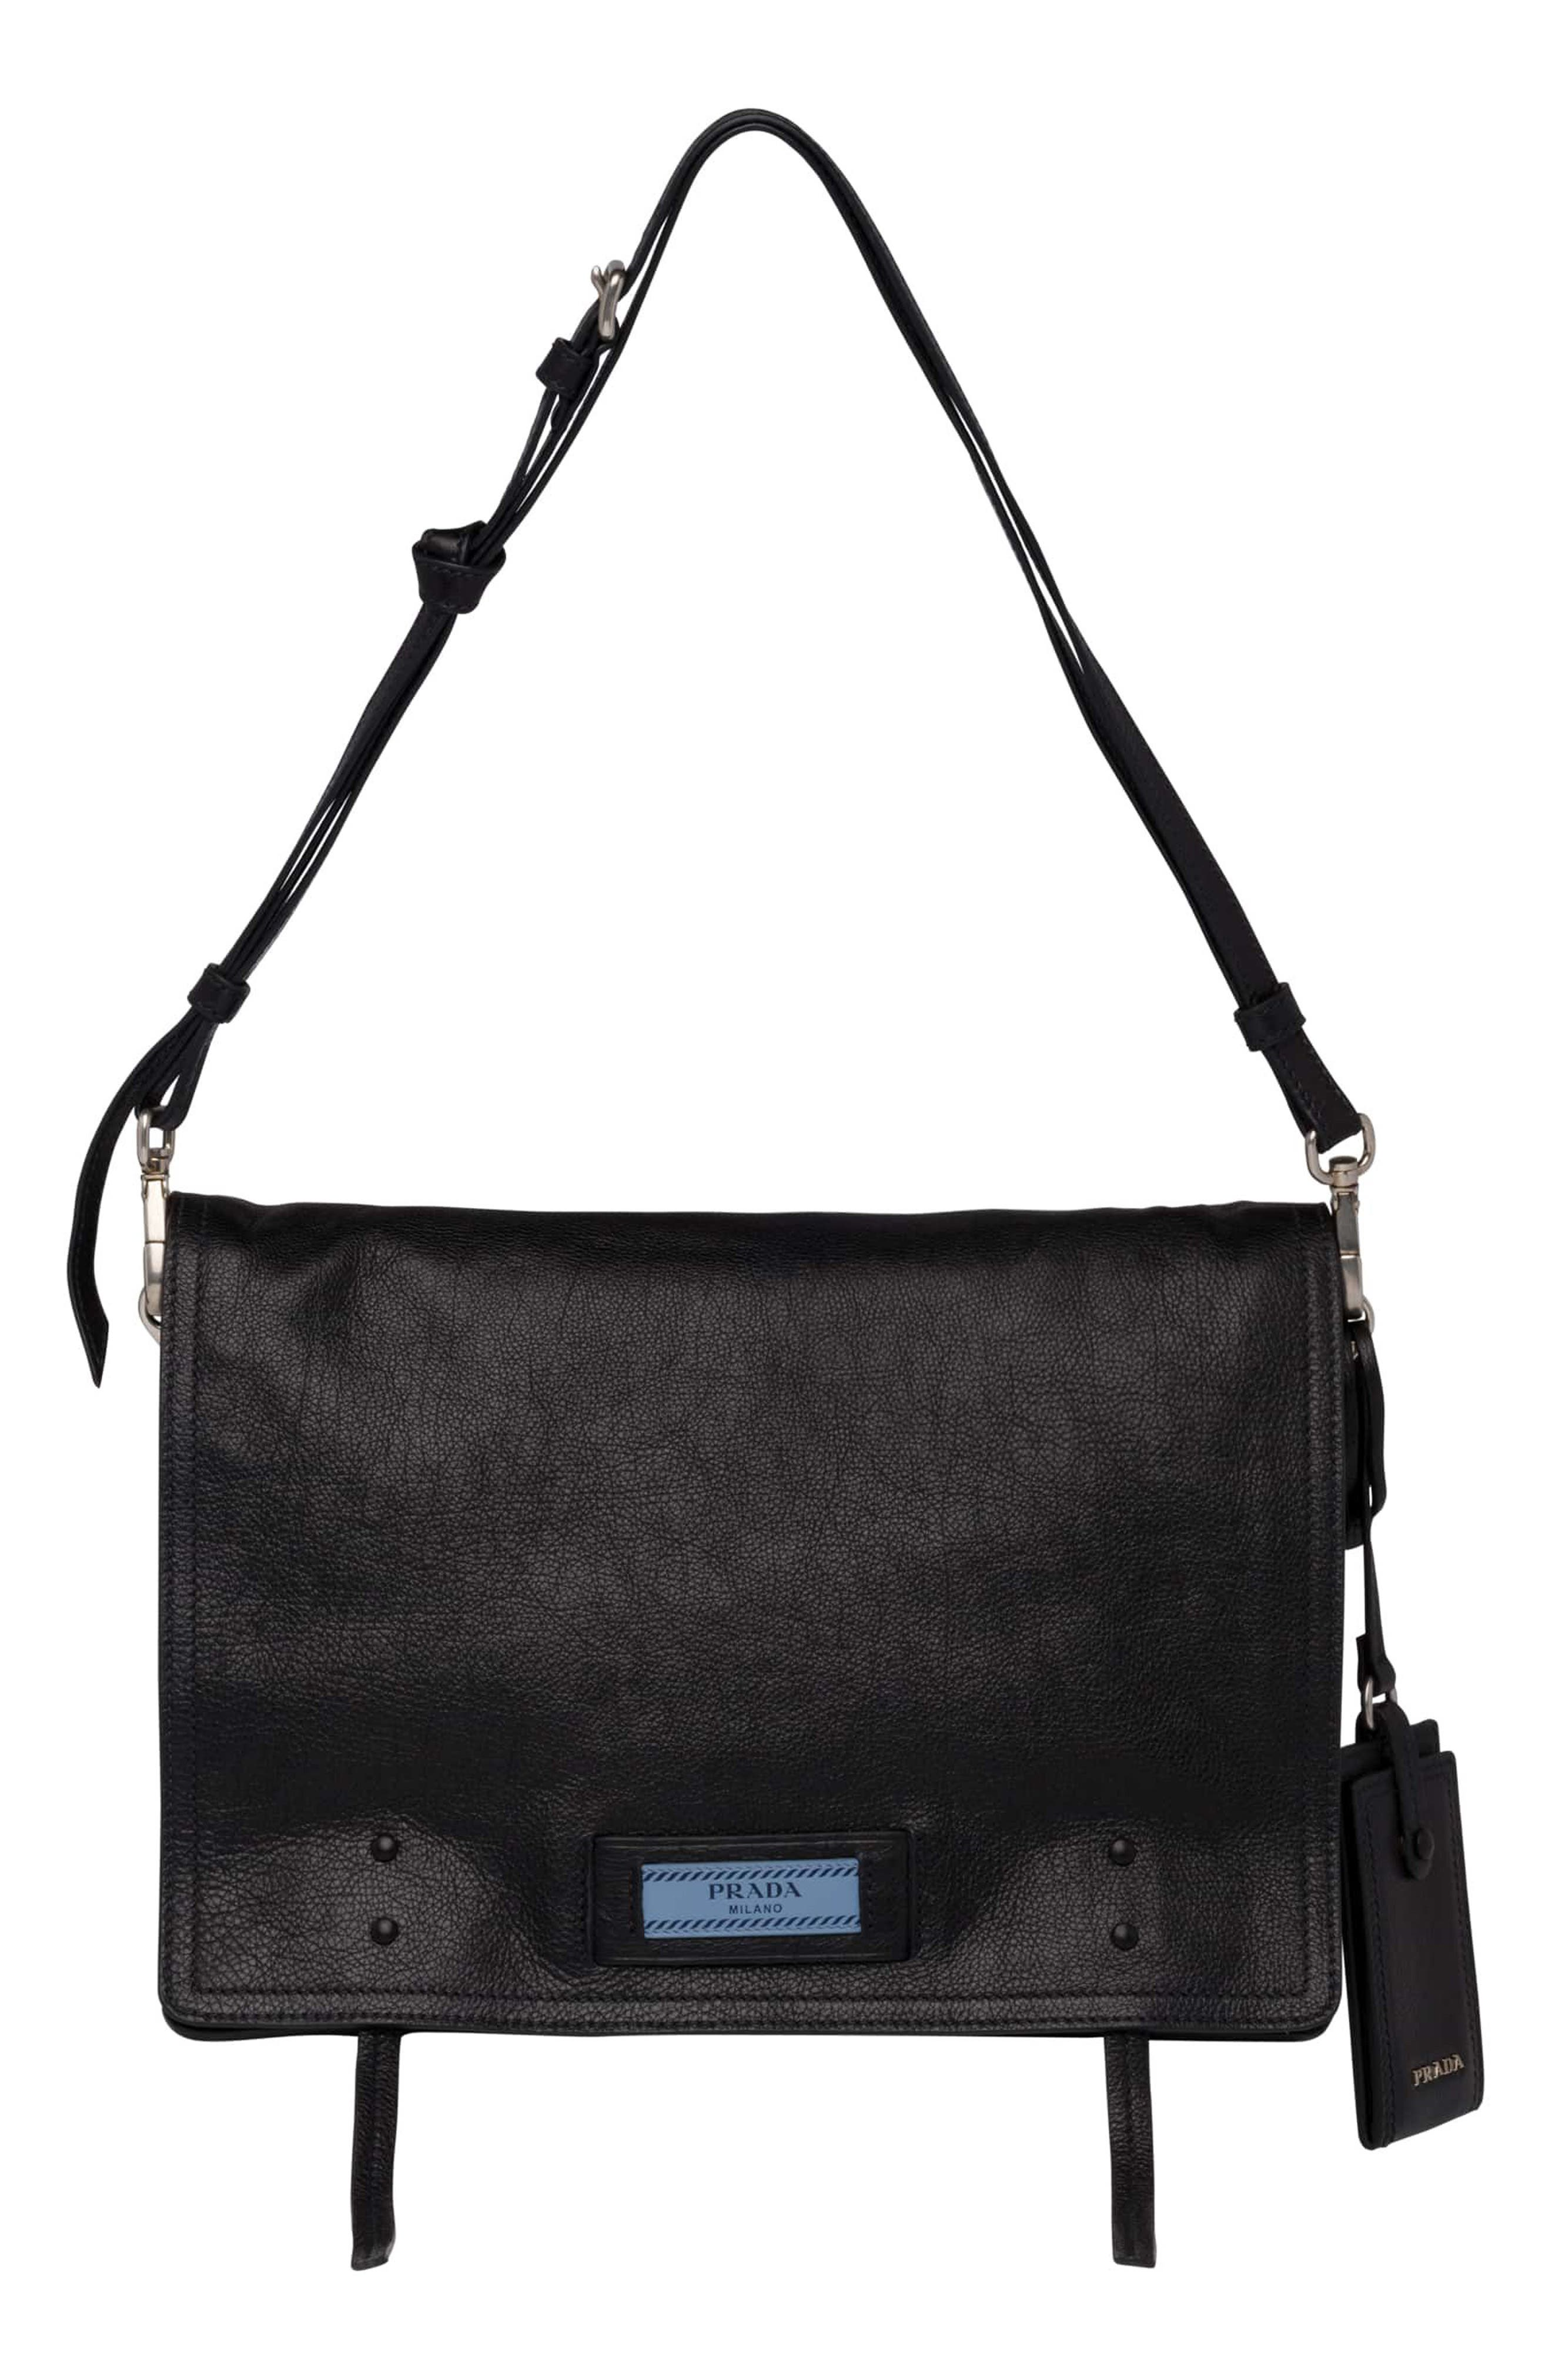 Cahier Glace Messenger Bag,                         Main,                         color, Nero/ Astrale